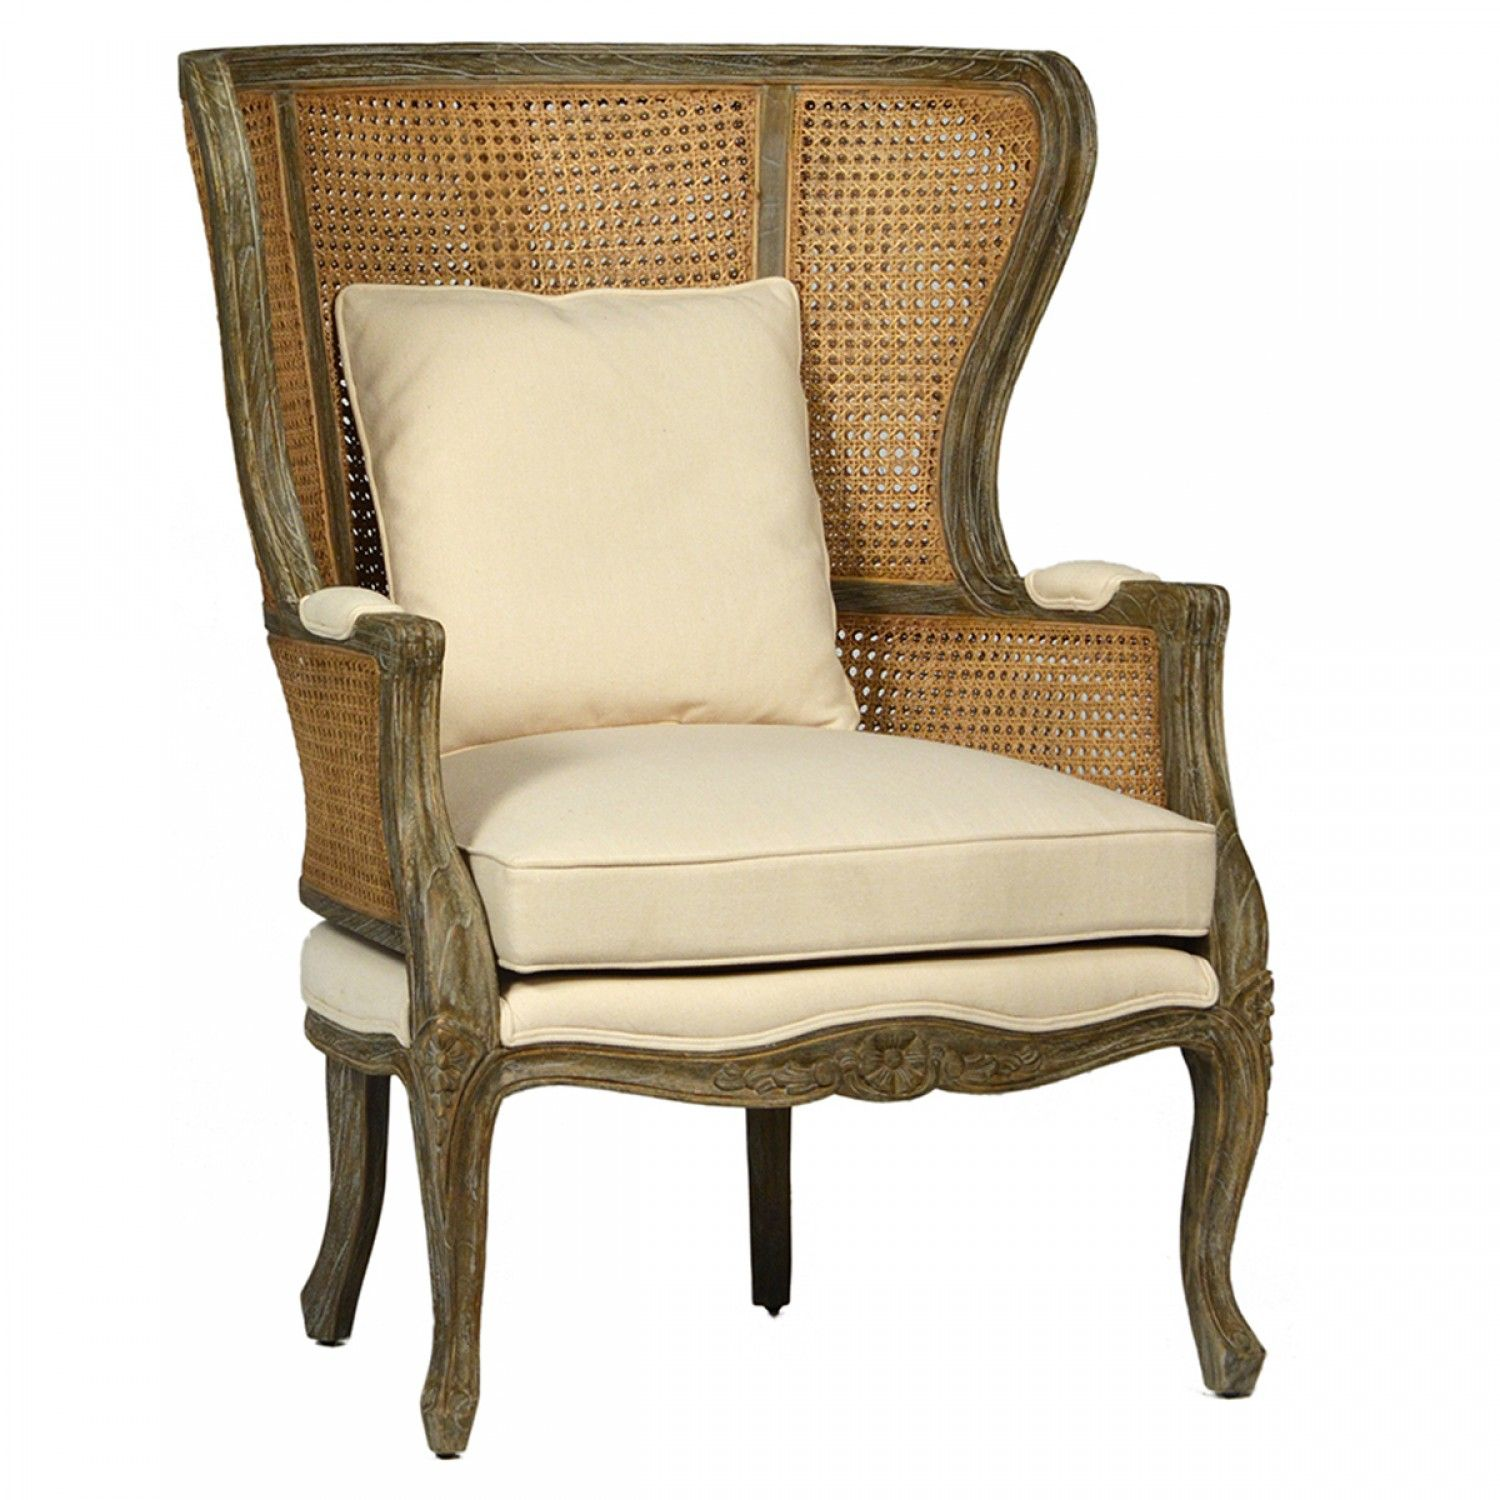 A lovely carved cane back chair French Farmhouse